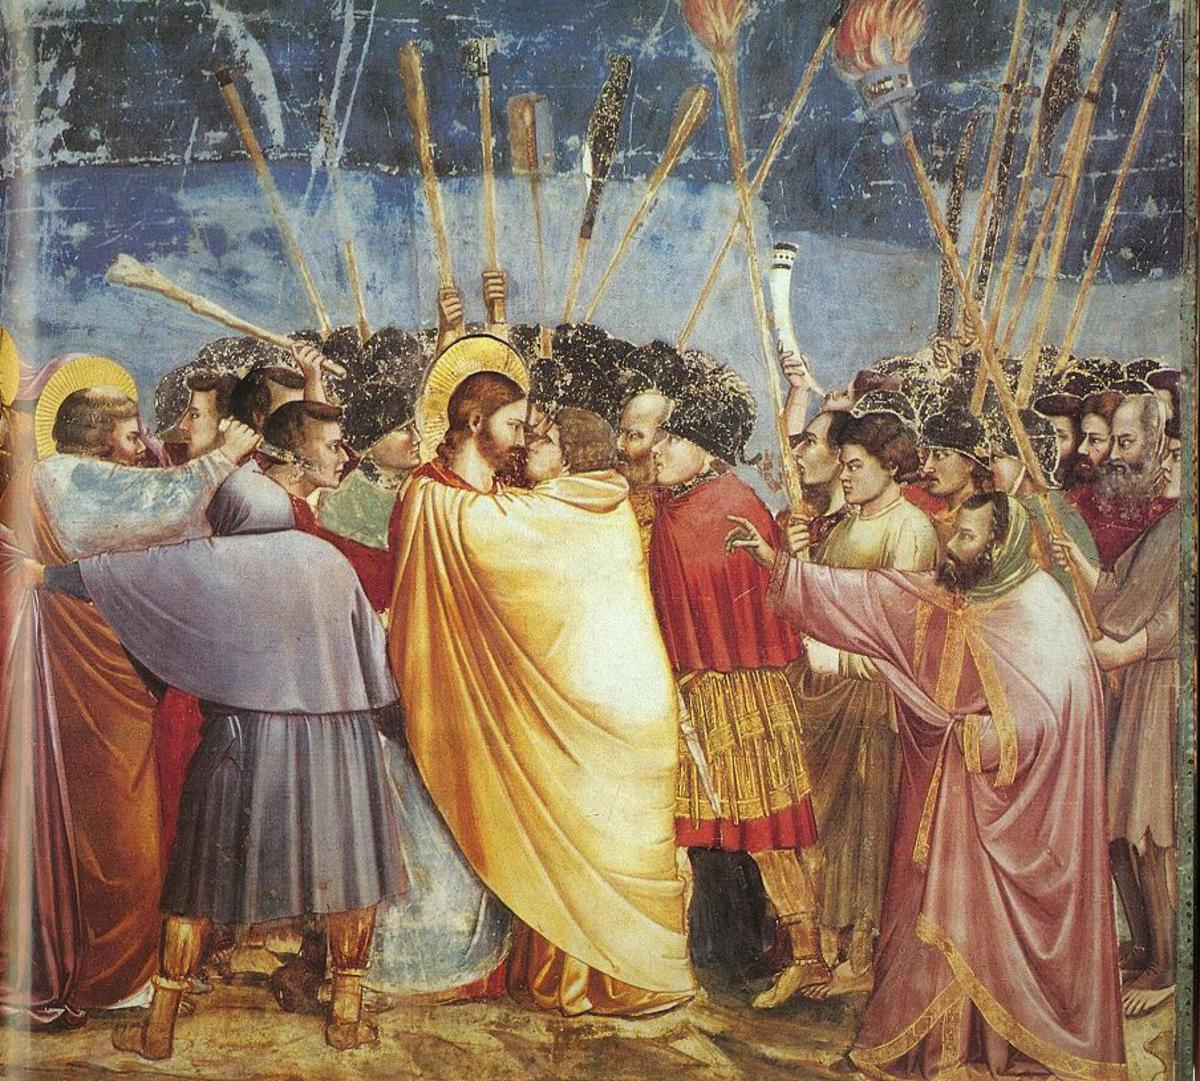 Jesus knew Judas was going to betray him, yet accepted it whole heartedly.